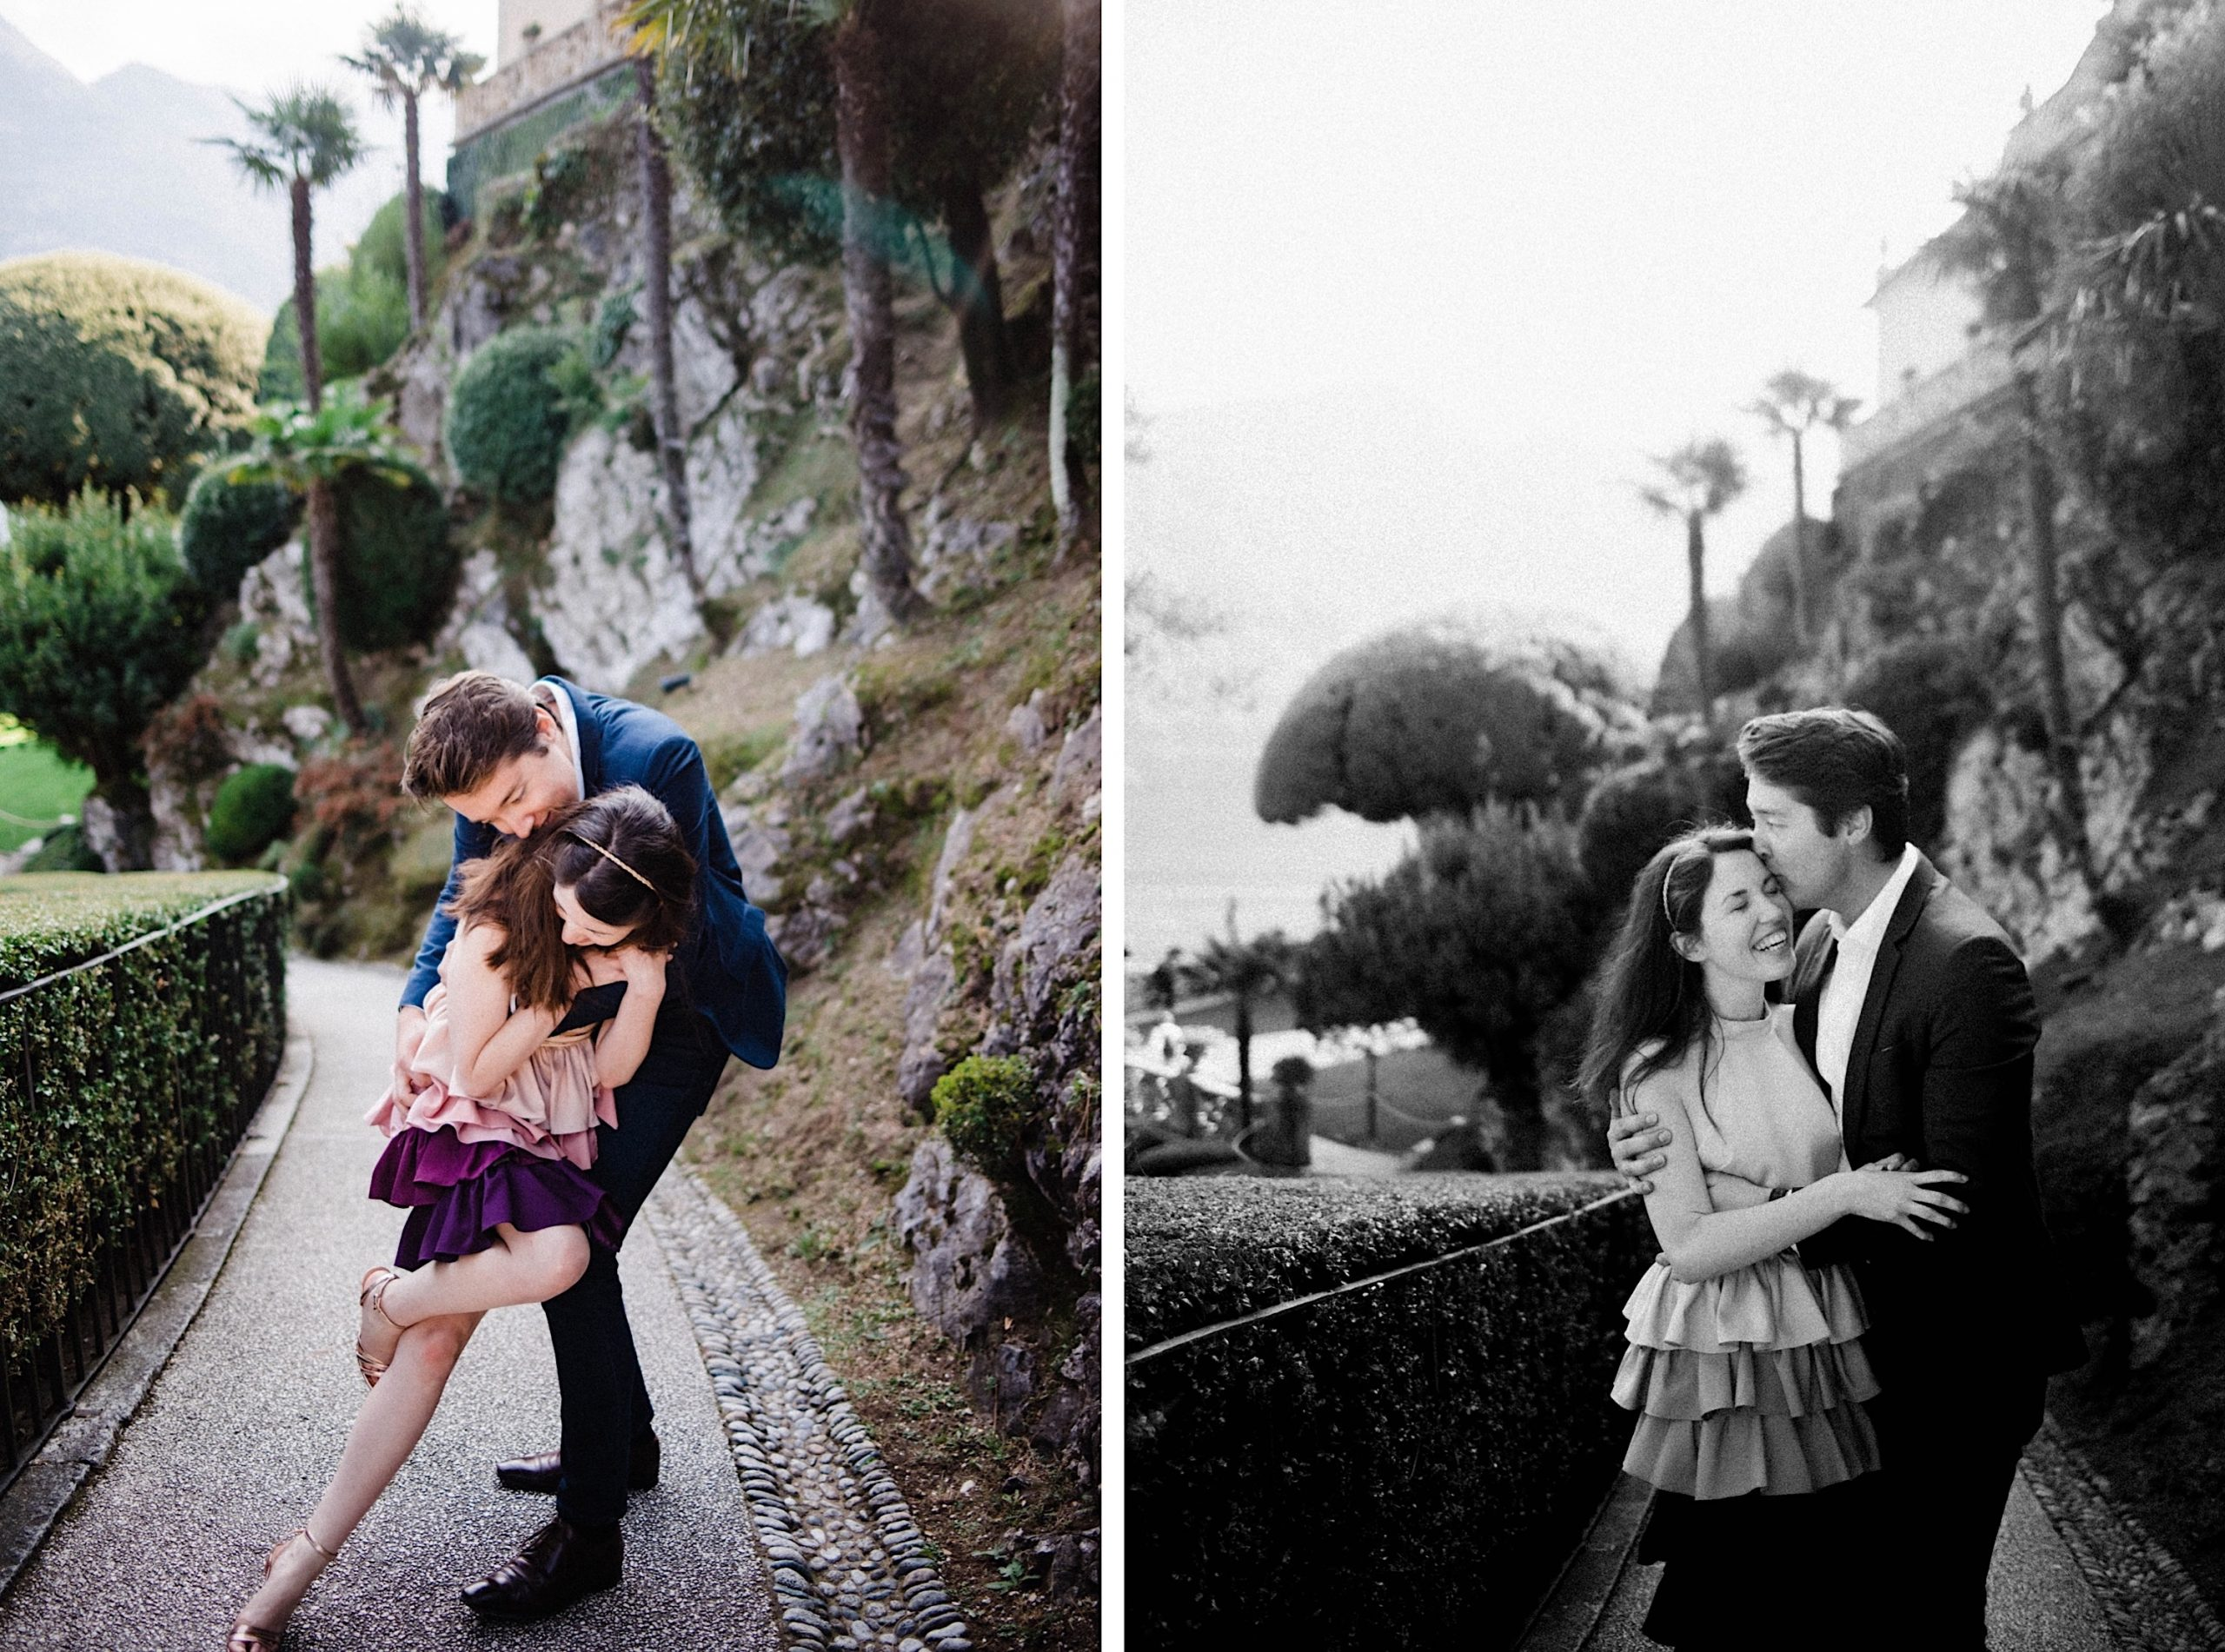 Two portrait photos, side by side. In the first, a couple dance together, the woman falling into her partner's arms. In the second, a black & white photo of the same couple hugging each other.